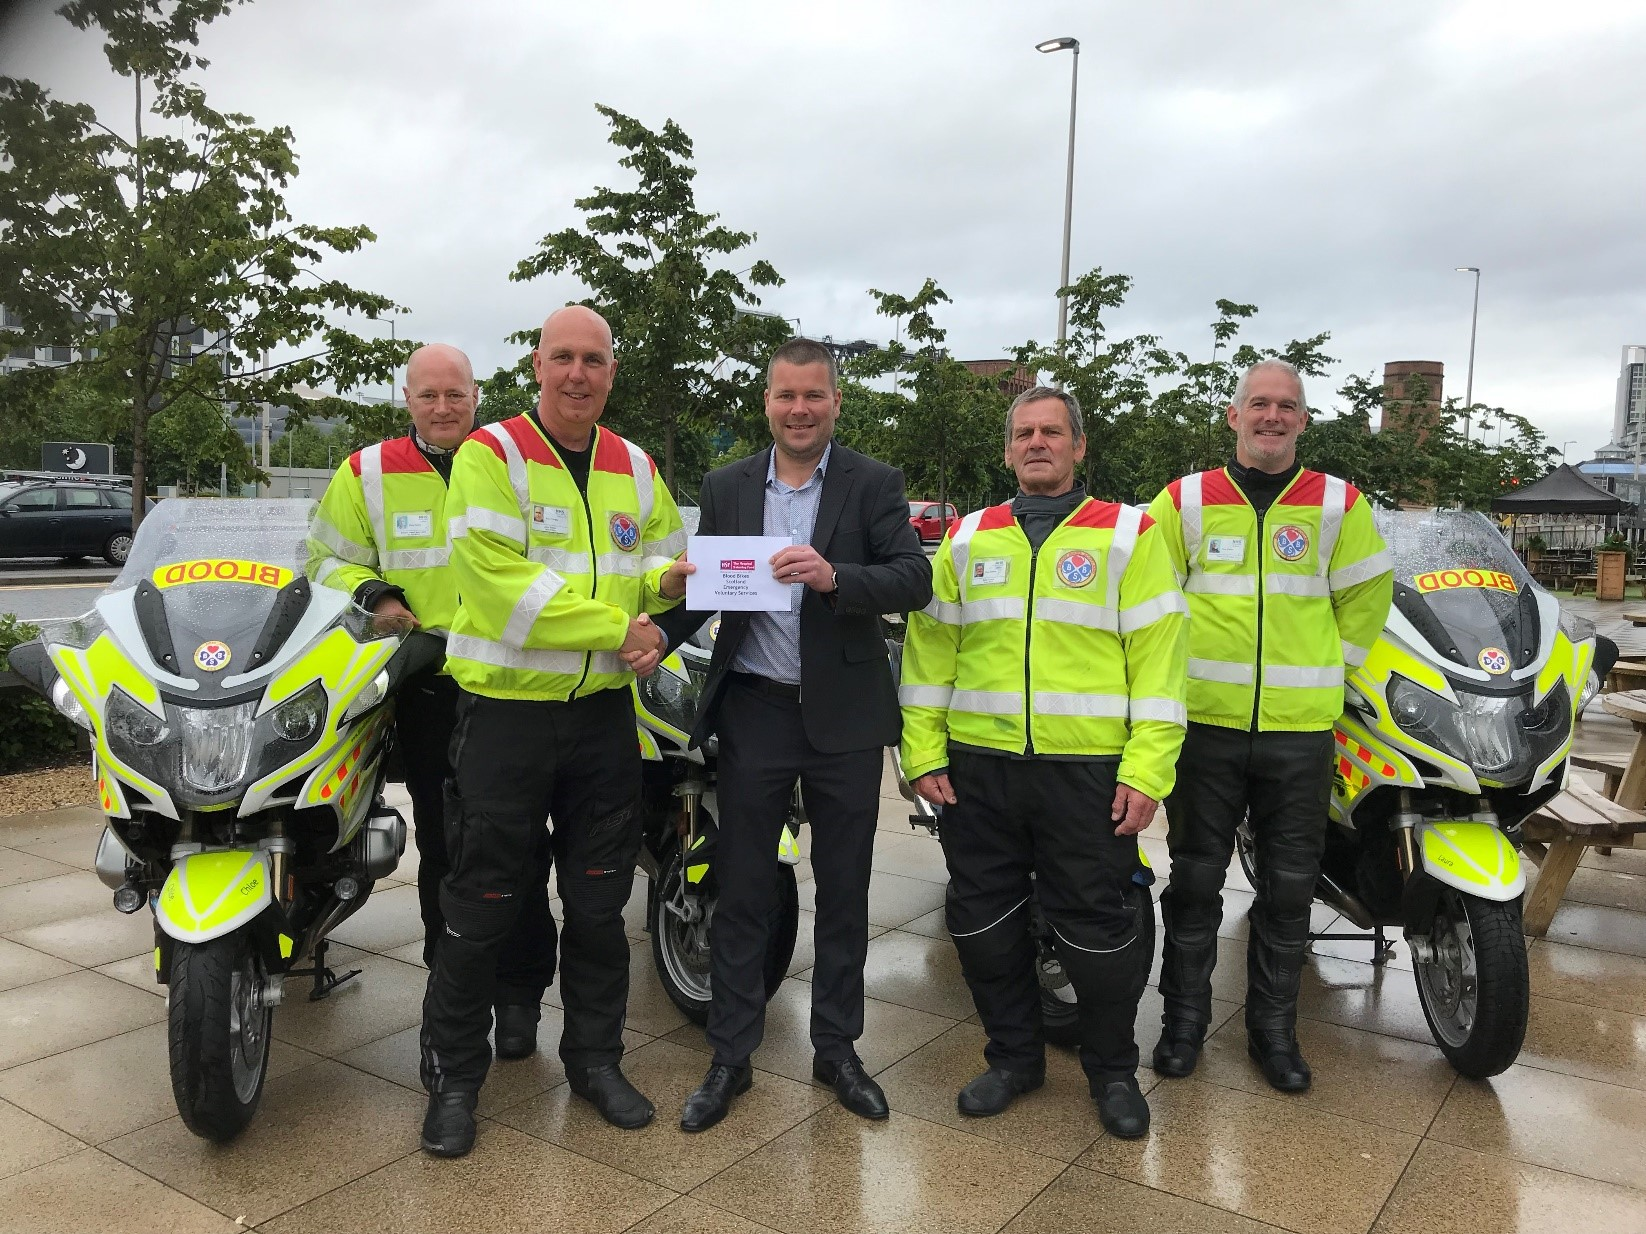 Warren Vale with some of the Blood Bikes Scotland volunteer crew